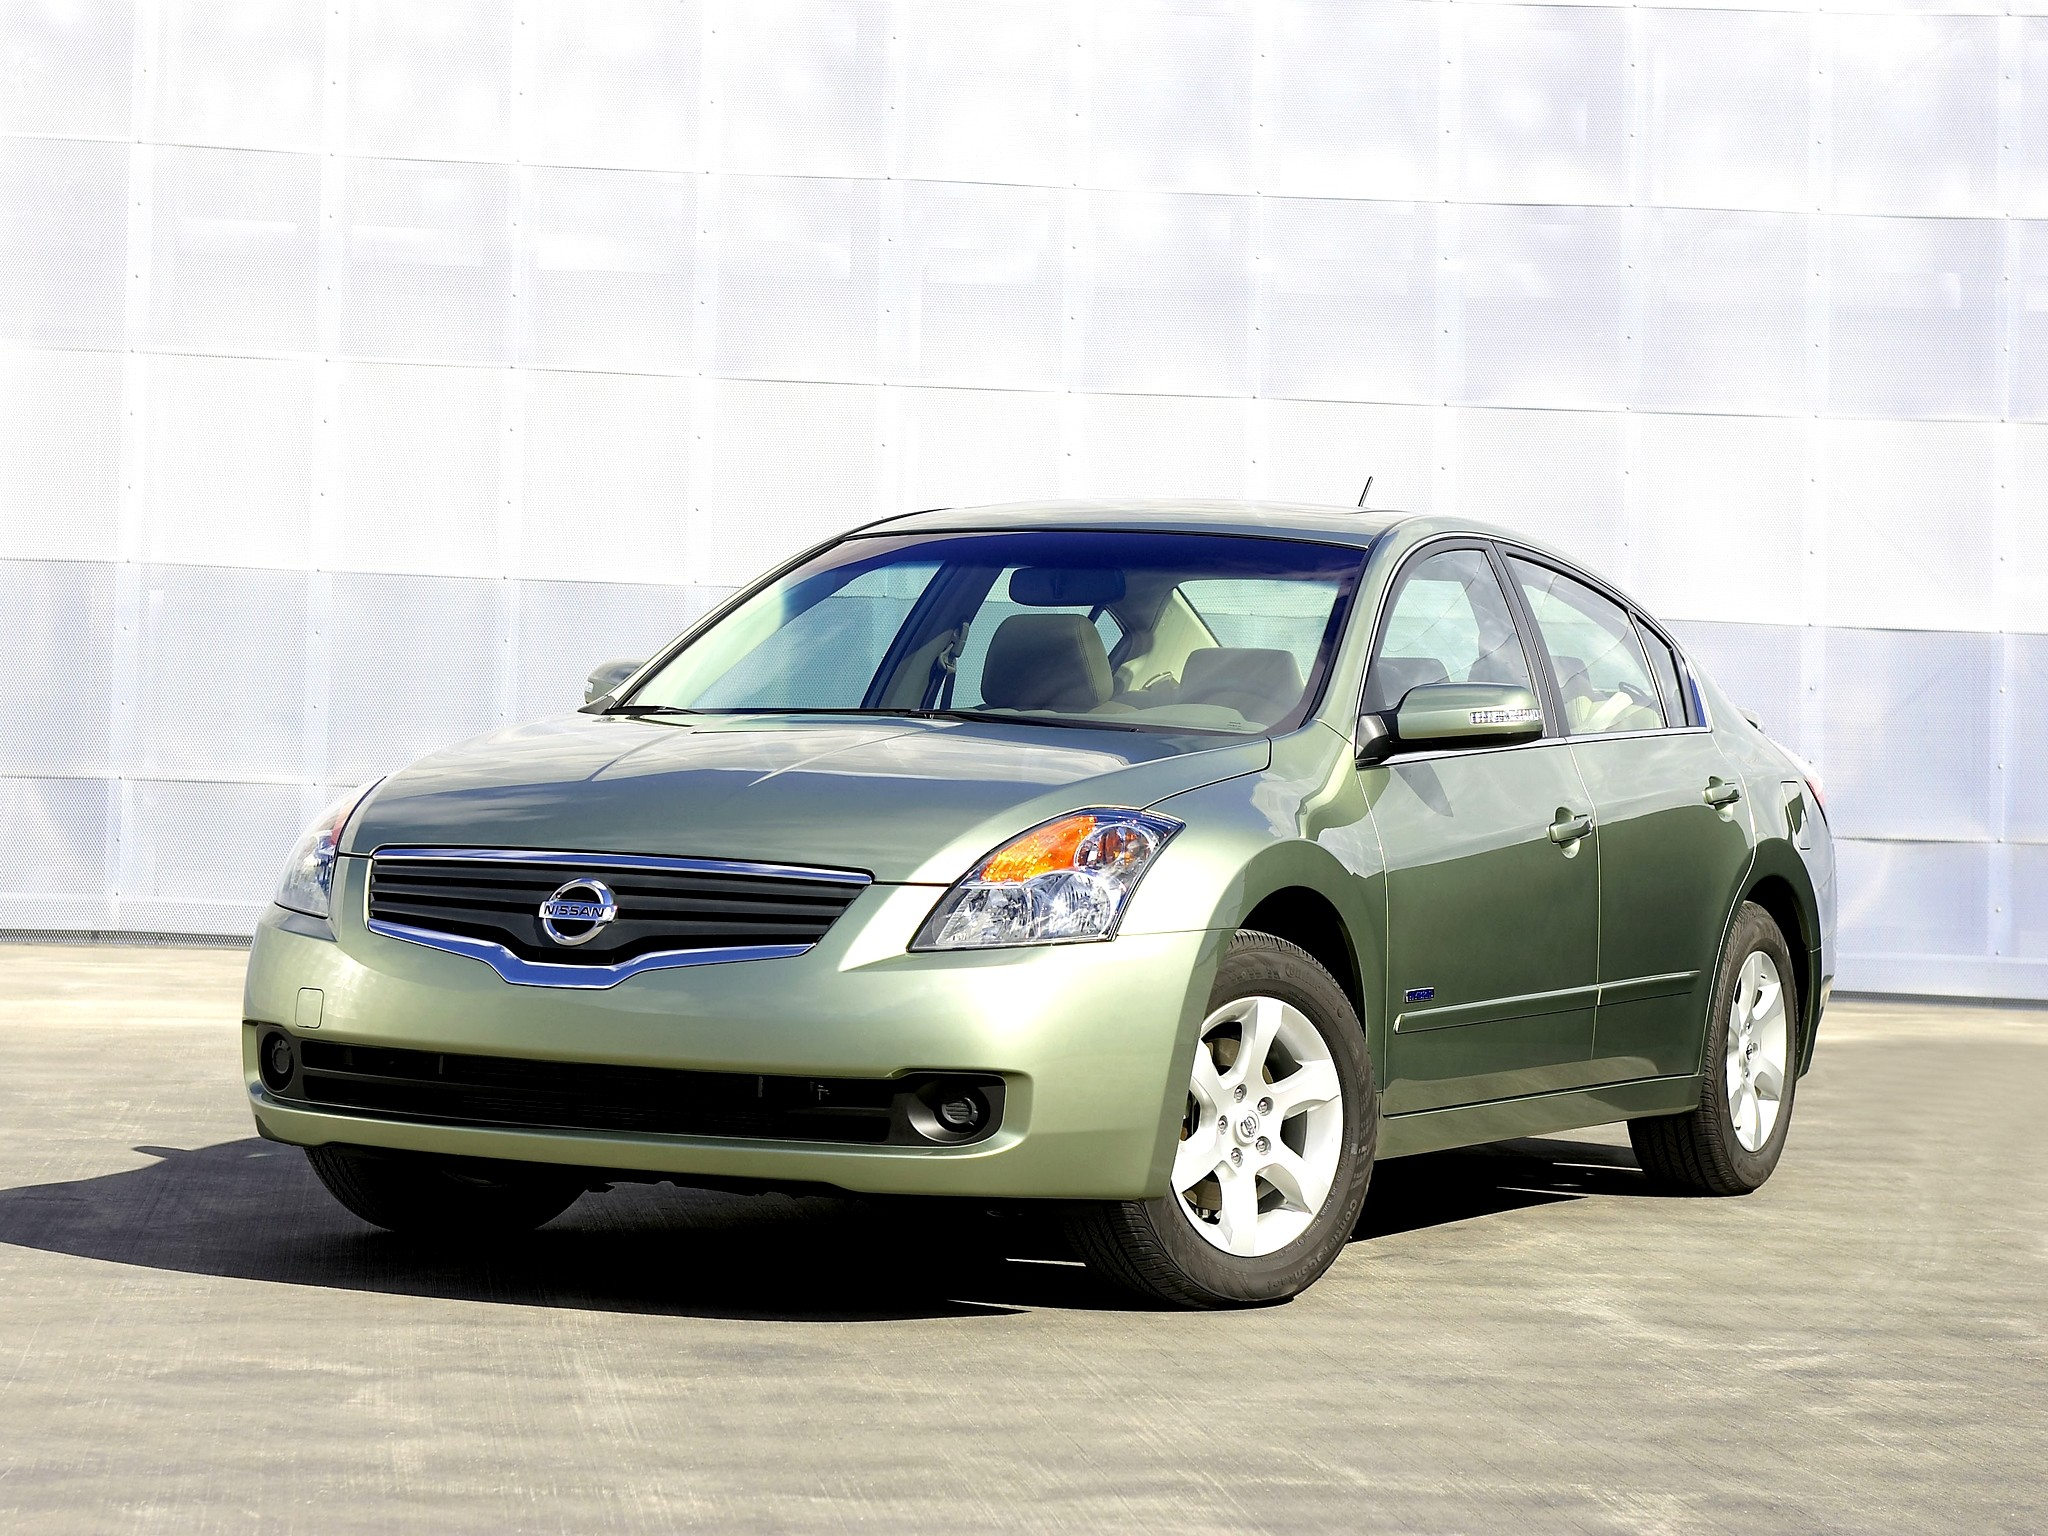 NISSAN Altima specs & photos - 2007, 2008, 2009, 2010 ...